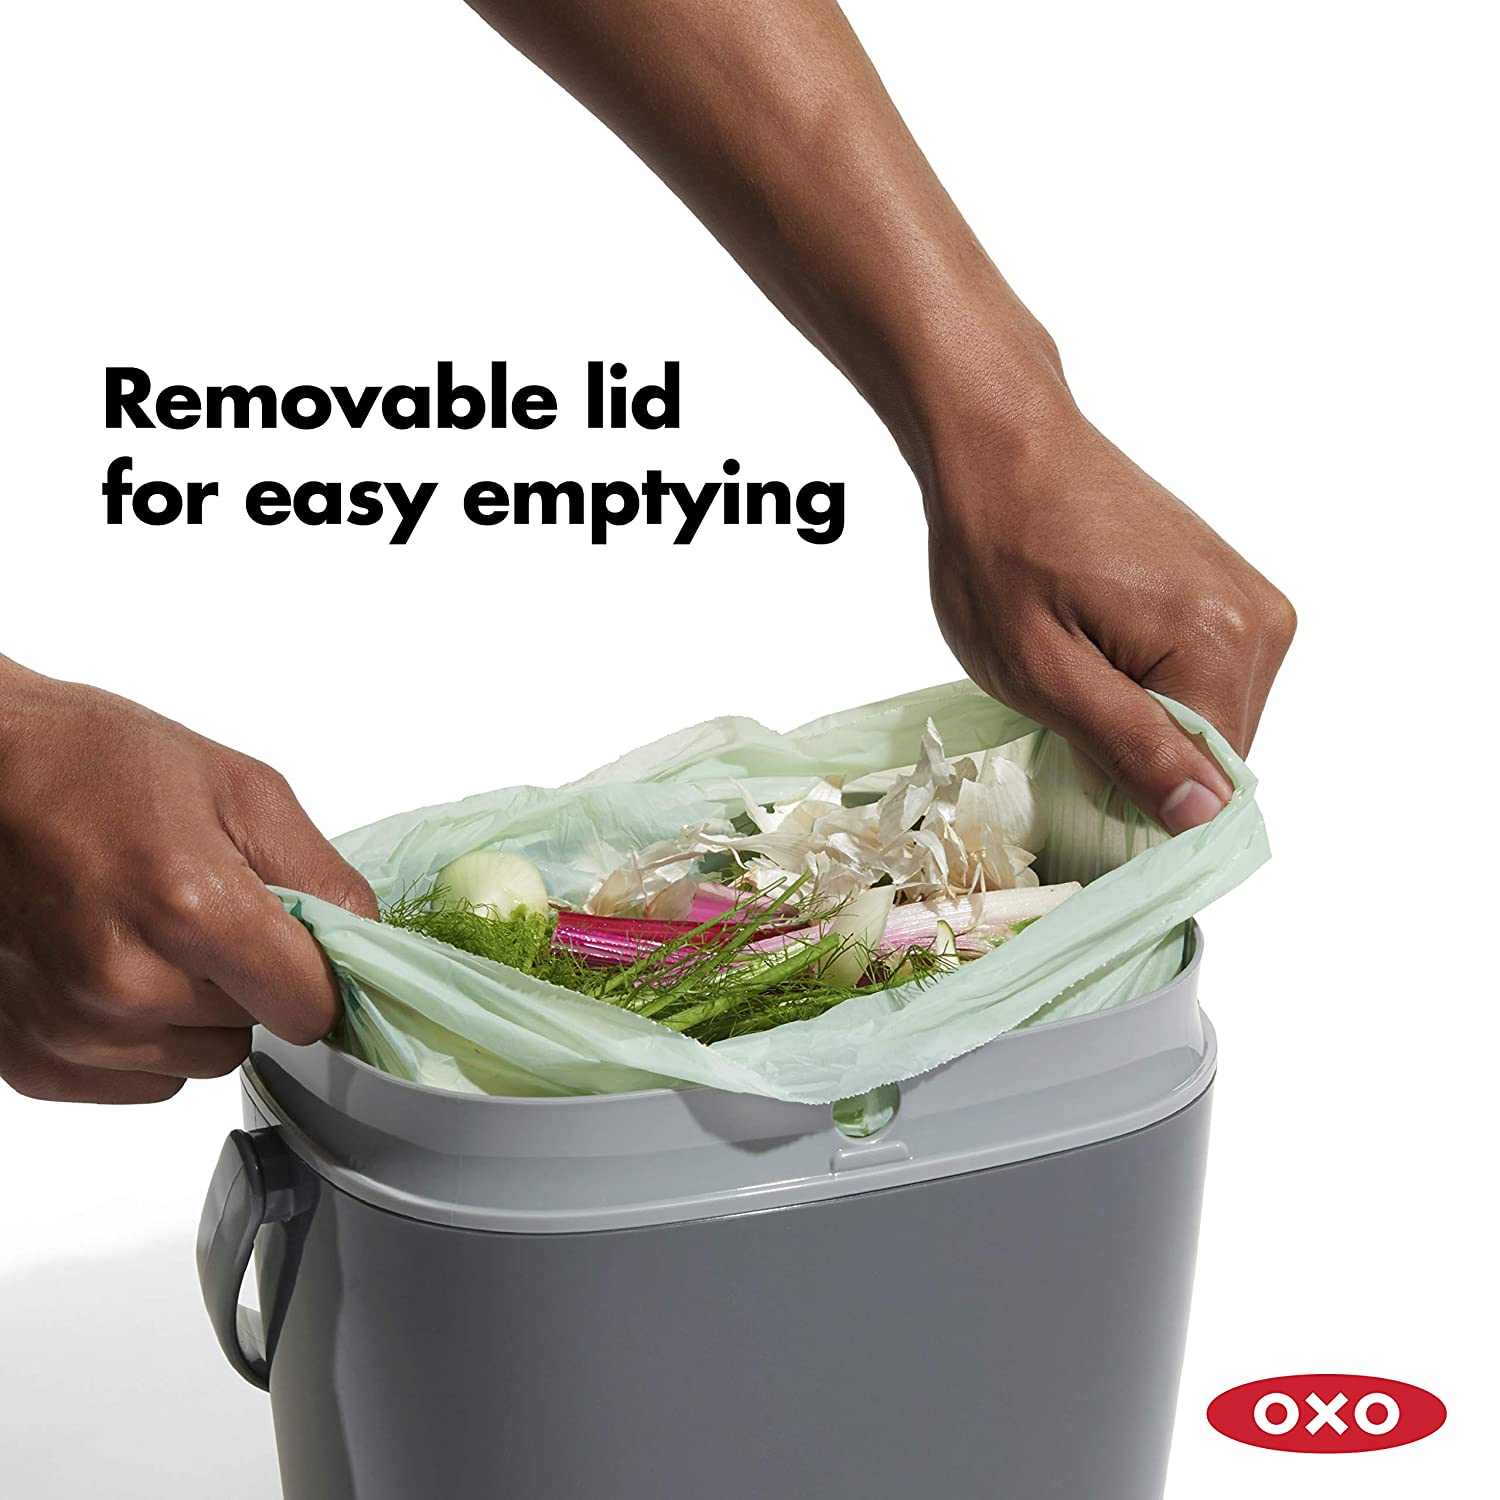 Amazon.com: OXO OXO Good Grips - Cubo de basura para compost ...